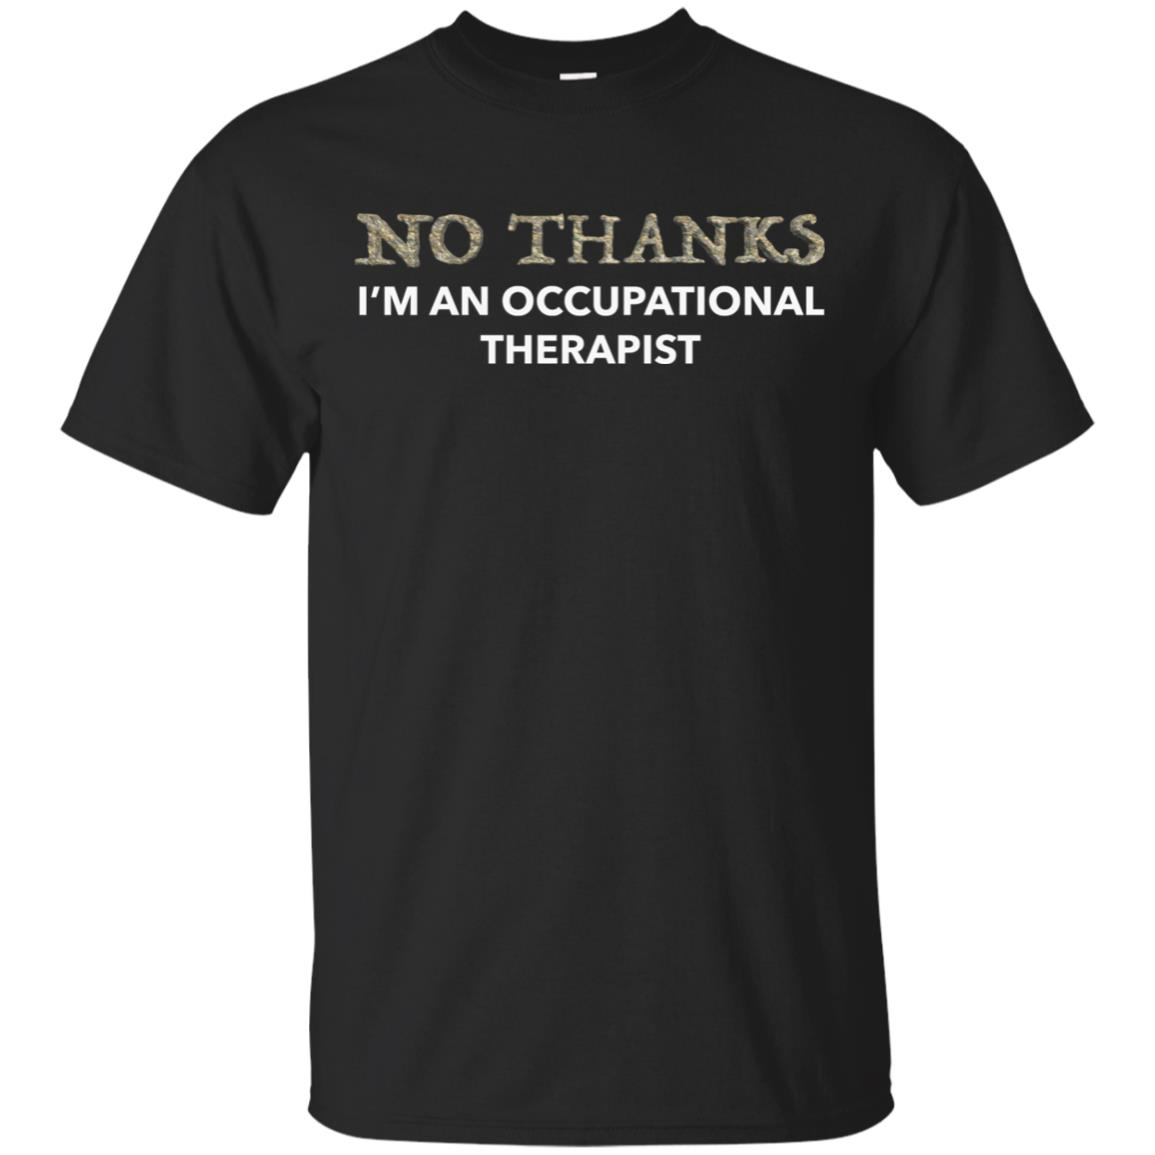 No thanks I'm an occupational therapist Unisex Short Sleeve